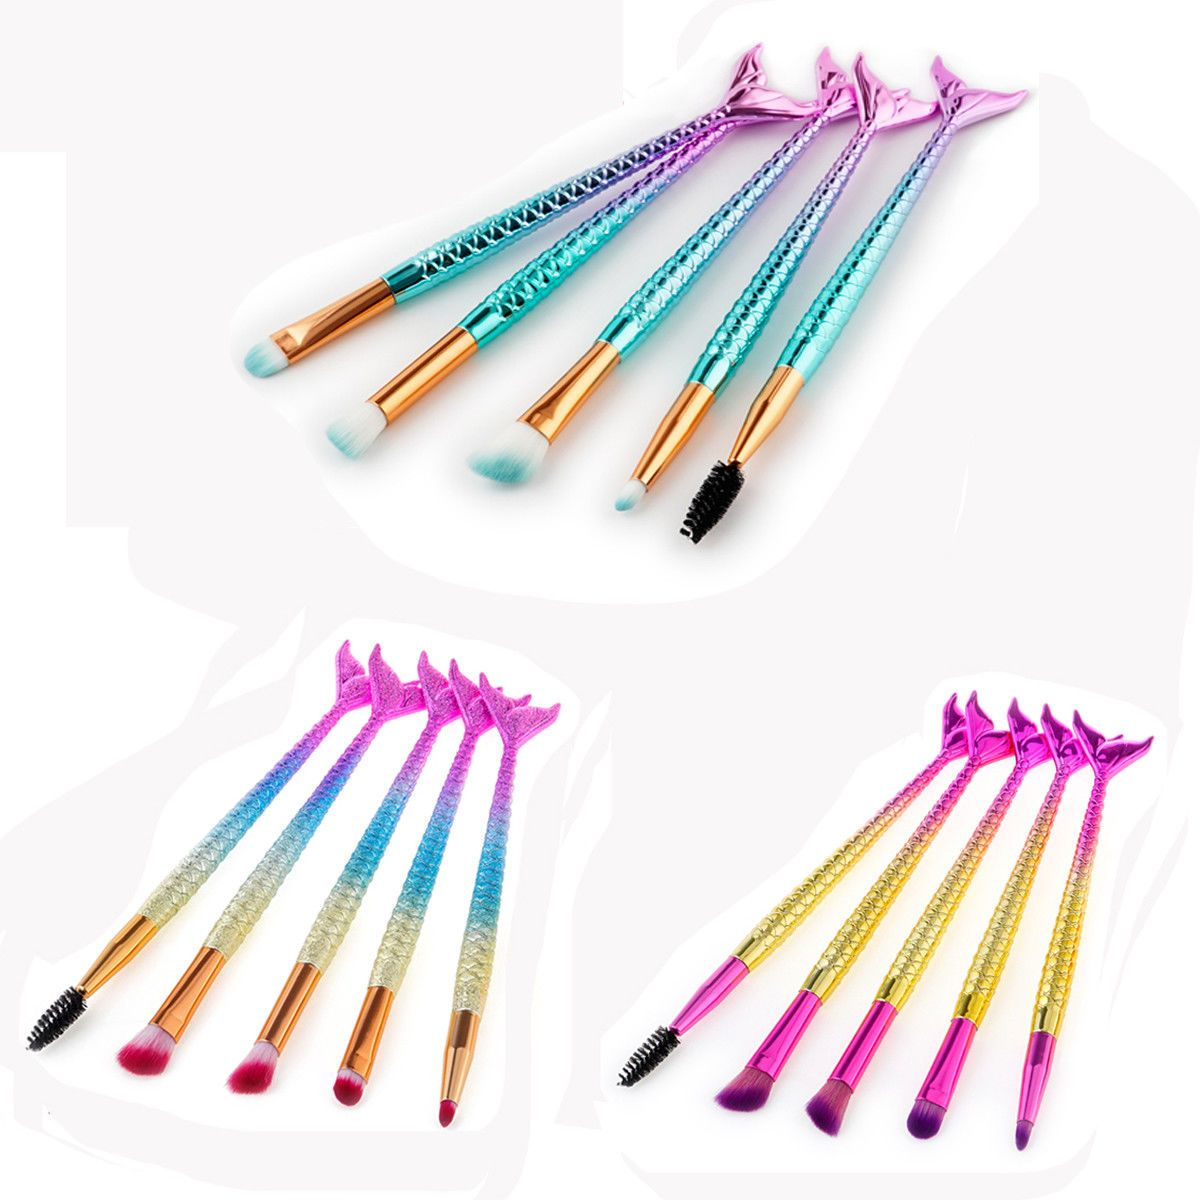 Makeup Brushes Health & Beauty Makeup brush set, Eye